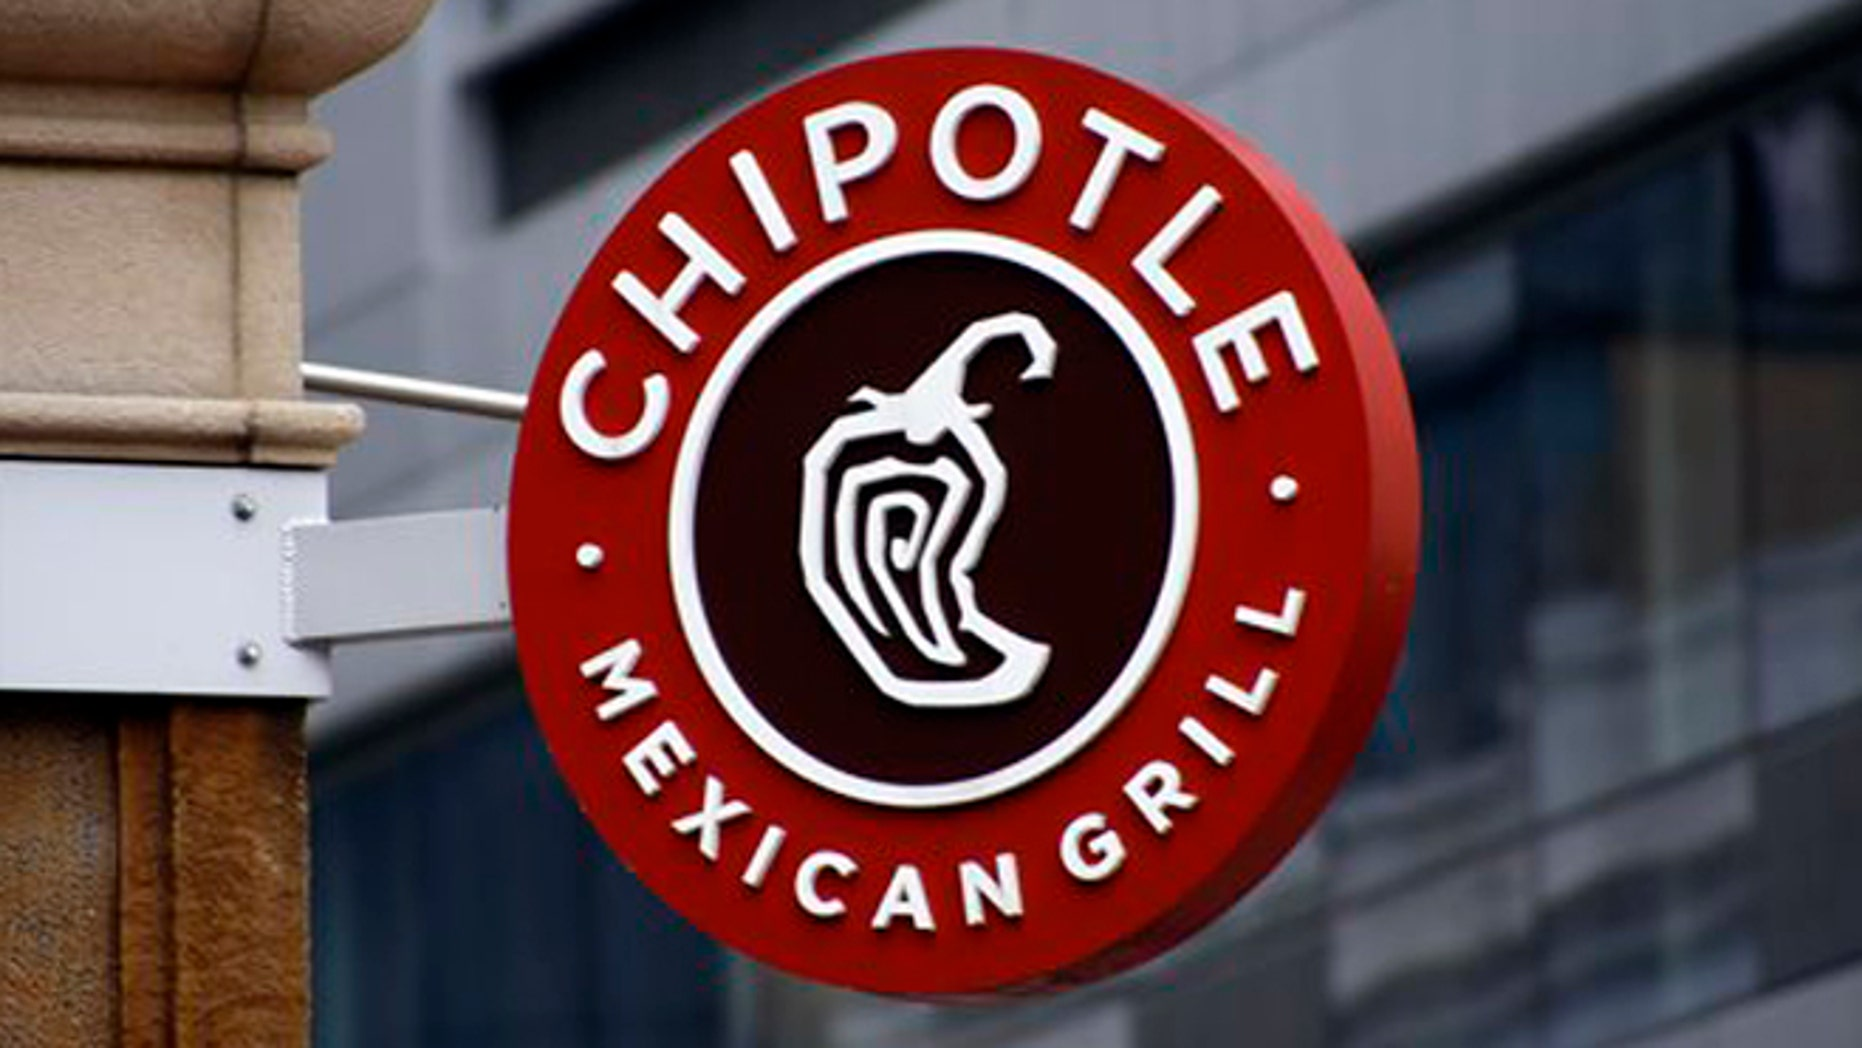 """This Monday, Feb. 8, 2016, photo shows a sign for the Chipotle restaurant in Pittsburgh's Market Square. Chipotle is introducing a temporary loyalty program intended to get customers back into its stores following a series of food scares. On Monday, June 27, Chipotle said its """"Chiptopia"""" loyalty program will reward people based on the number of times they visit each month, starting in July and running through September. The program has three reward levels, with more visits translating to more free entrees and other benefits. (AP Photo/Keith Srakocic)"""